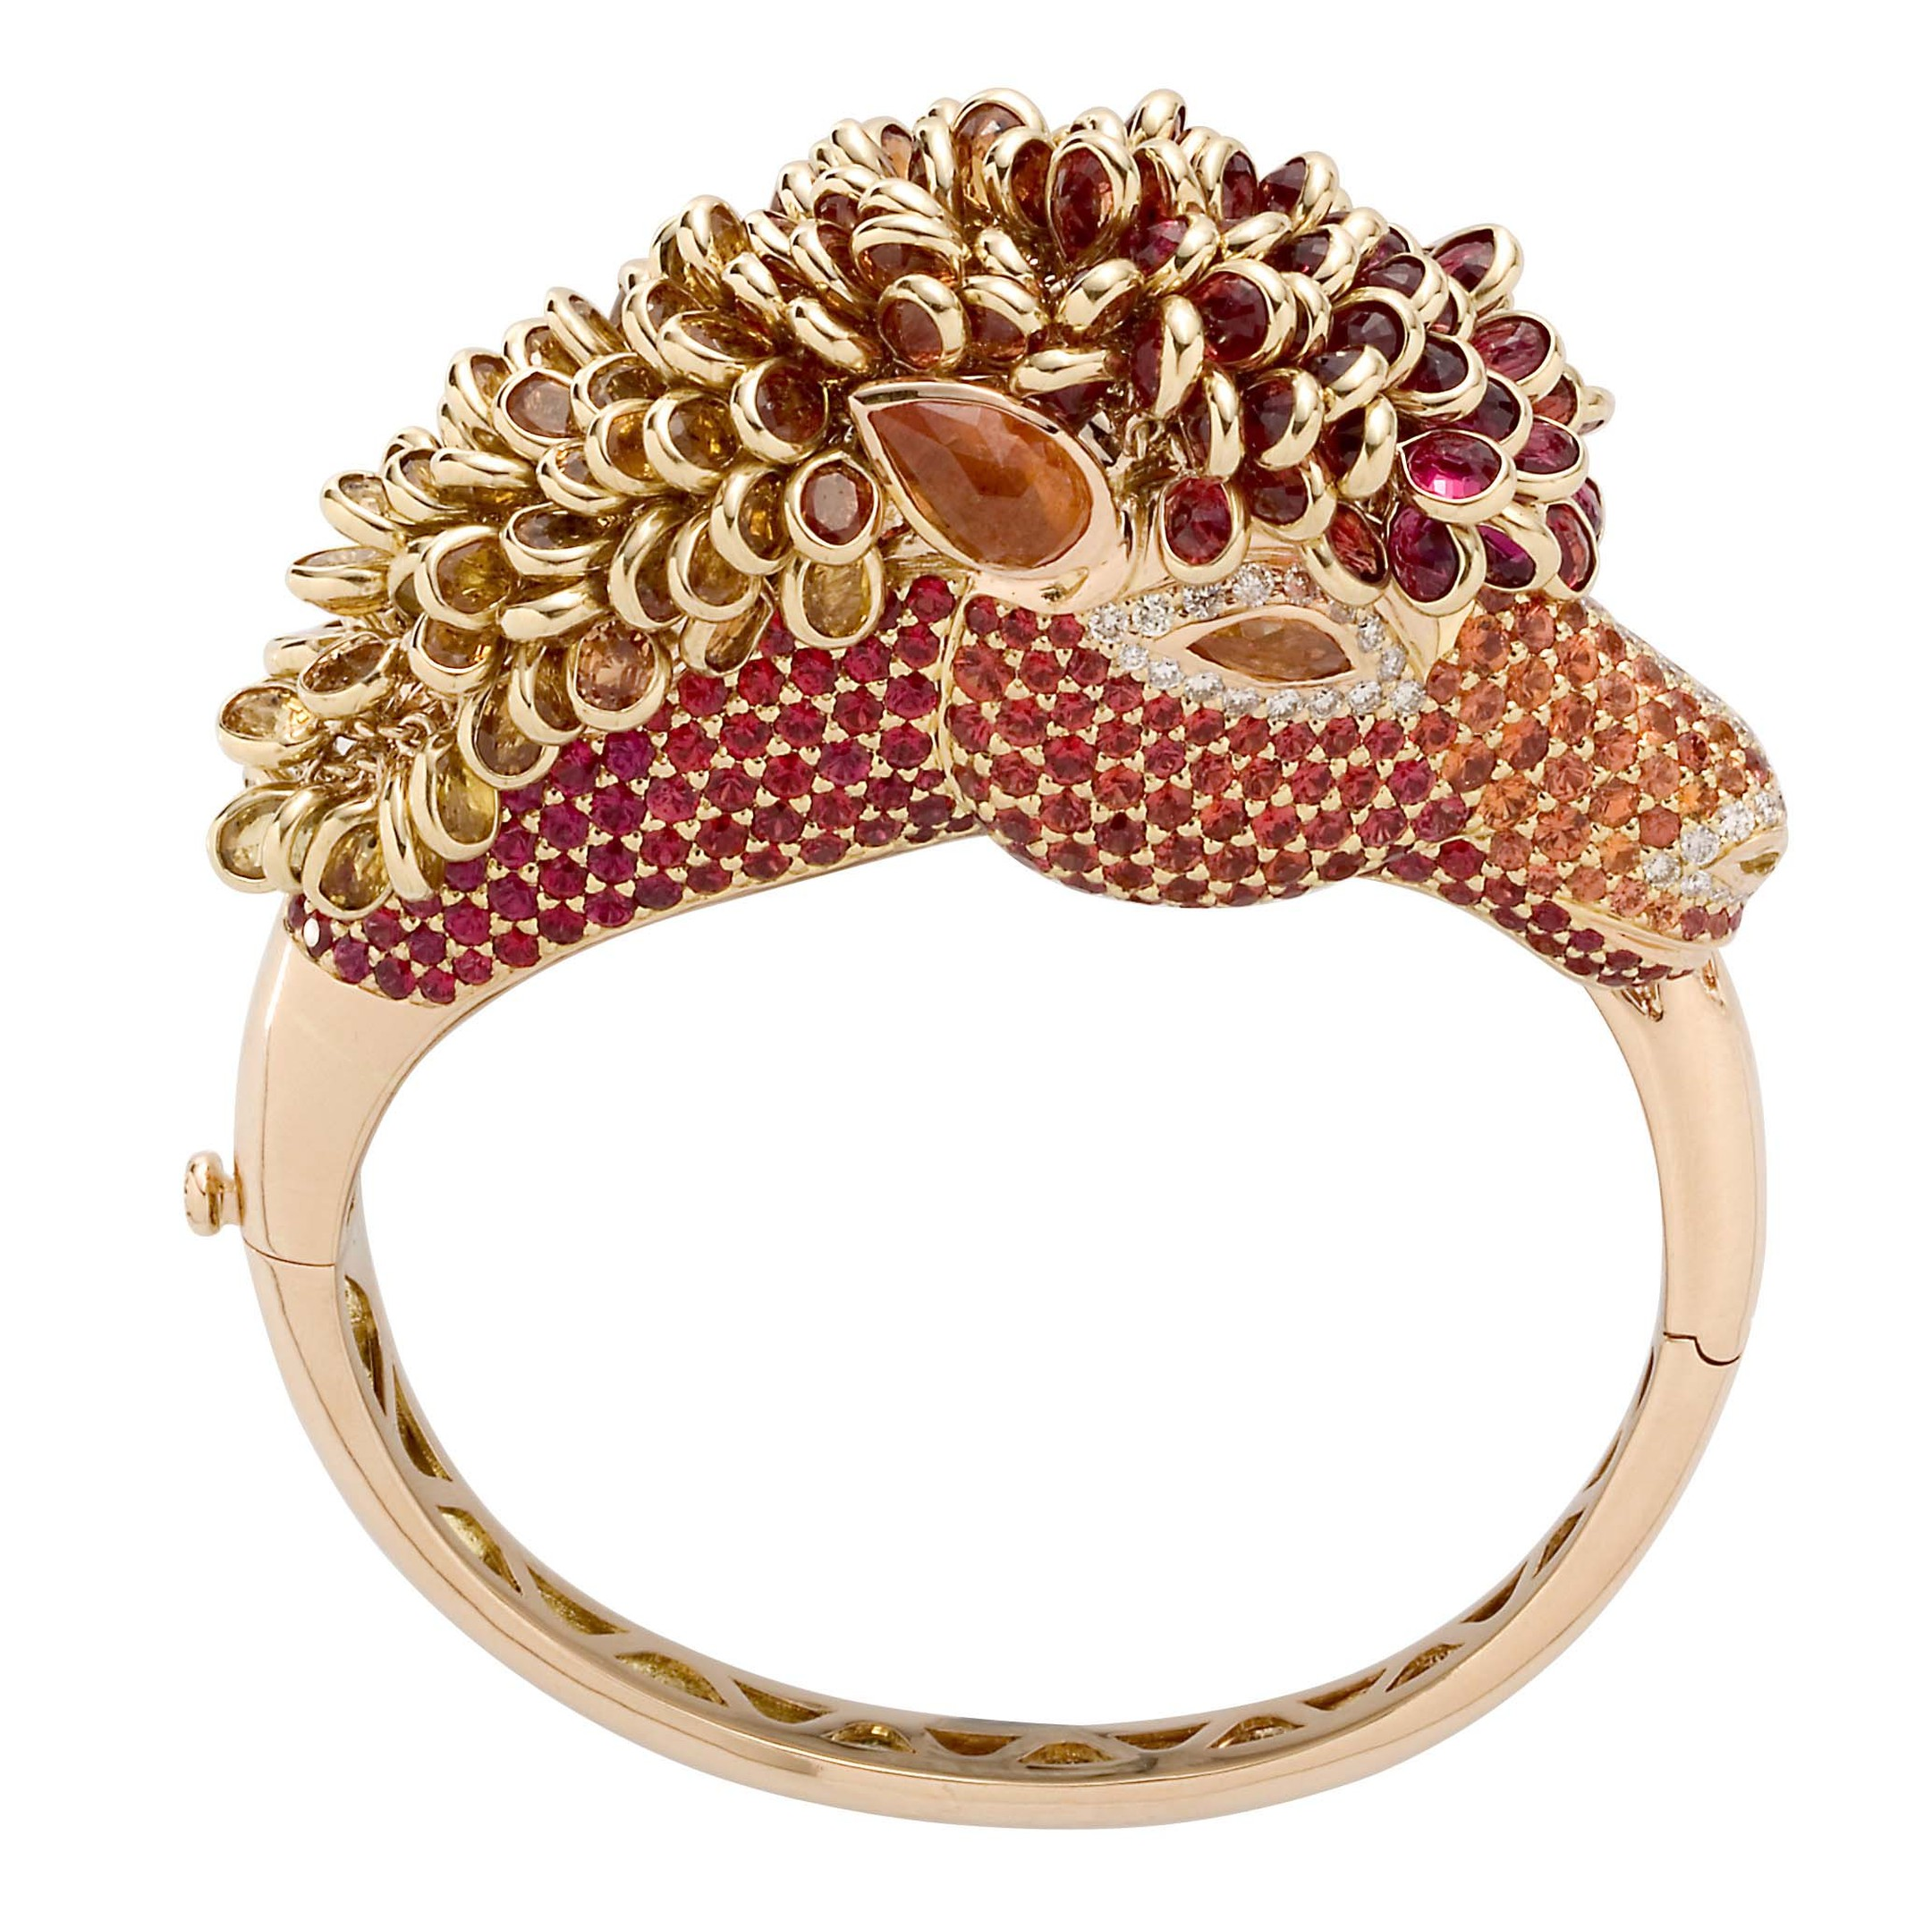 Zorab Atelier de Creation Fire Bred Horse bracelet composed of multi-coloured diamonds, orange, red and yellow sapphires, spessartite garnets and white diamonds.